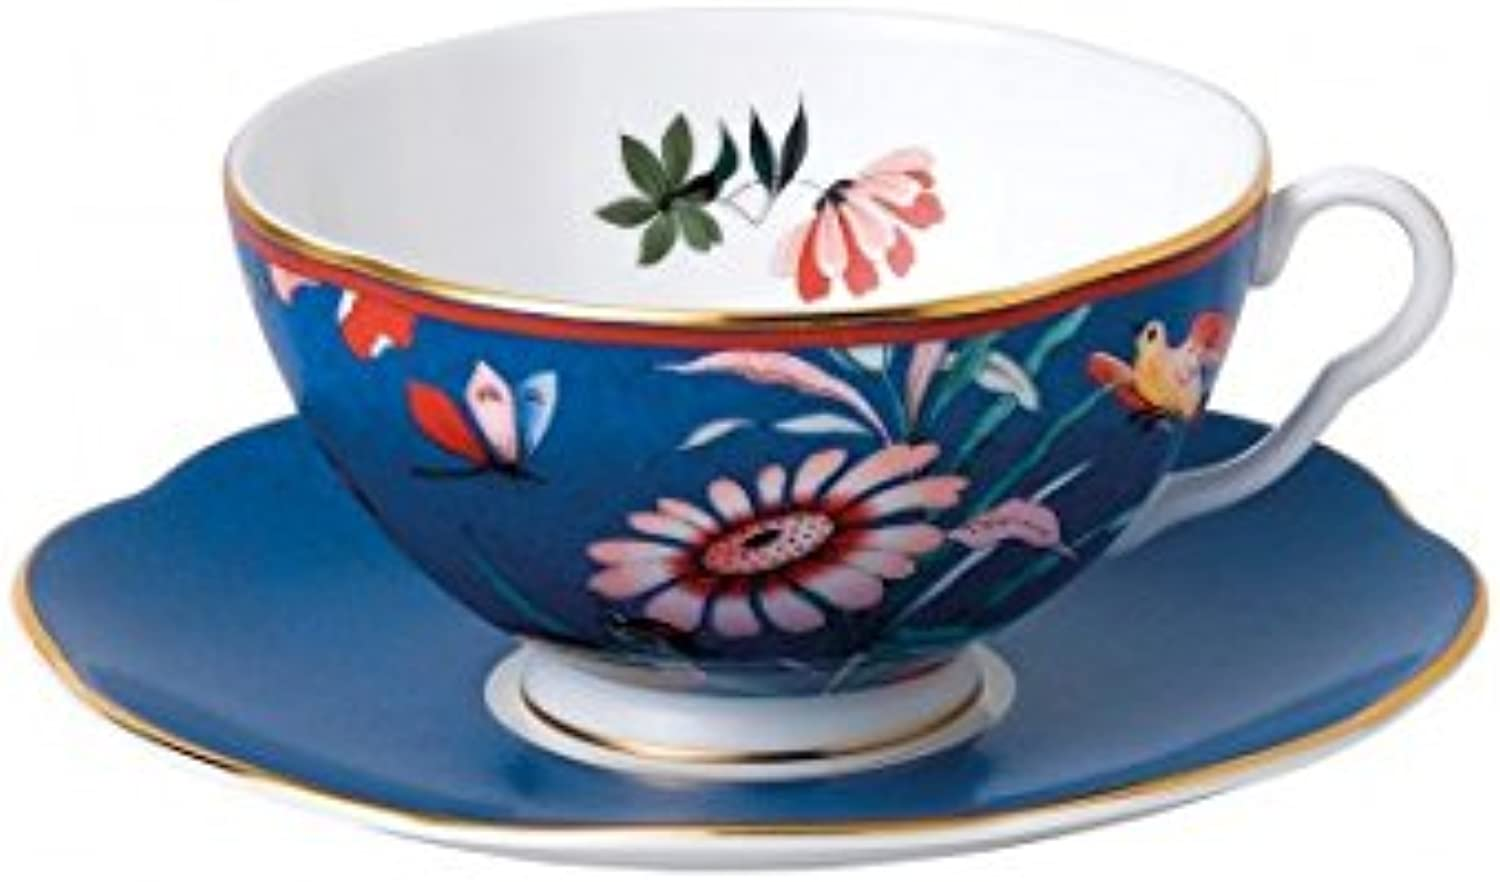 Wedgwood Paeonia bluesh Teacup & Saucer Set bluee